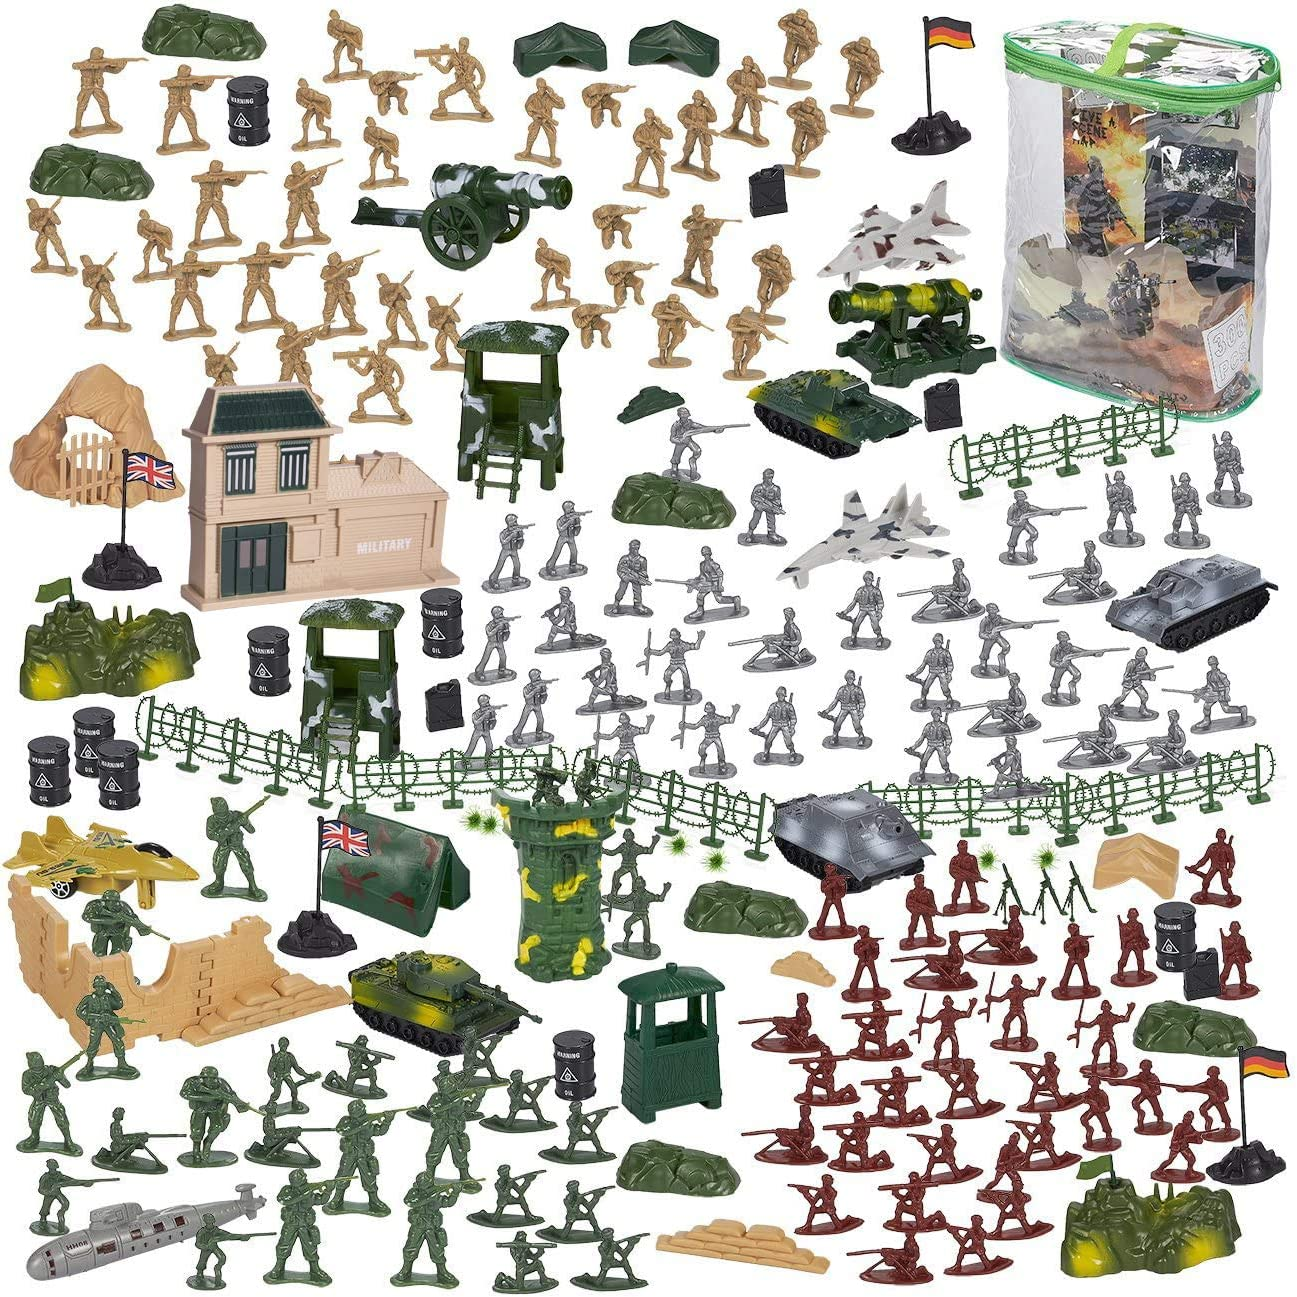 Flags Battlefield Accessories Party Display Planes Military Toy Soldier Playset Tanks Blue Panda 300-Piece Army Action Figures Set